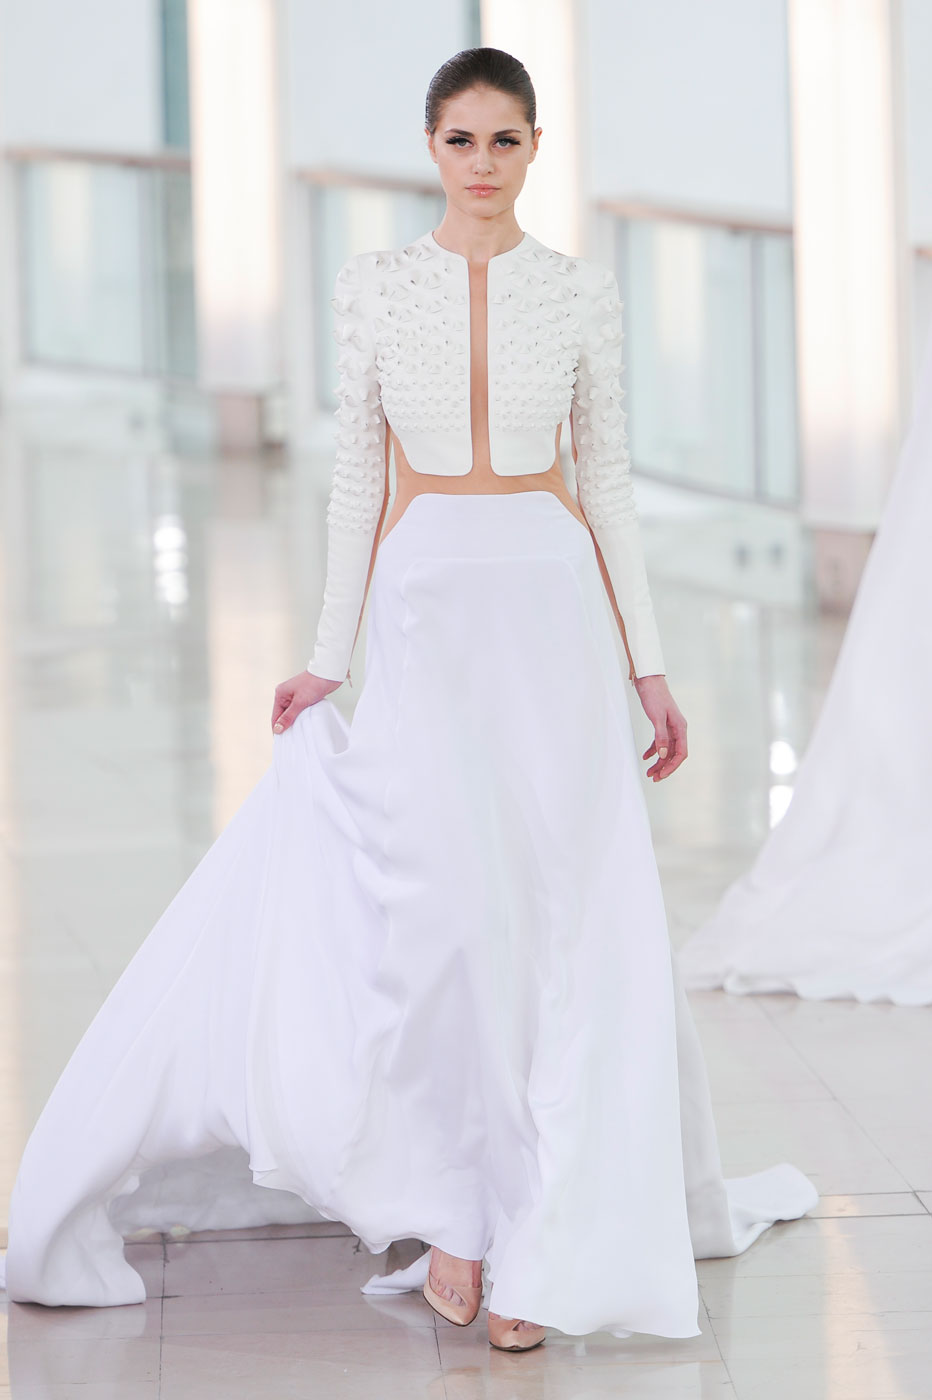 stephane-rolland-fashion-runway-show-haute-couture-paris-spring-2015-the-impression-18